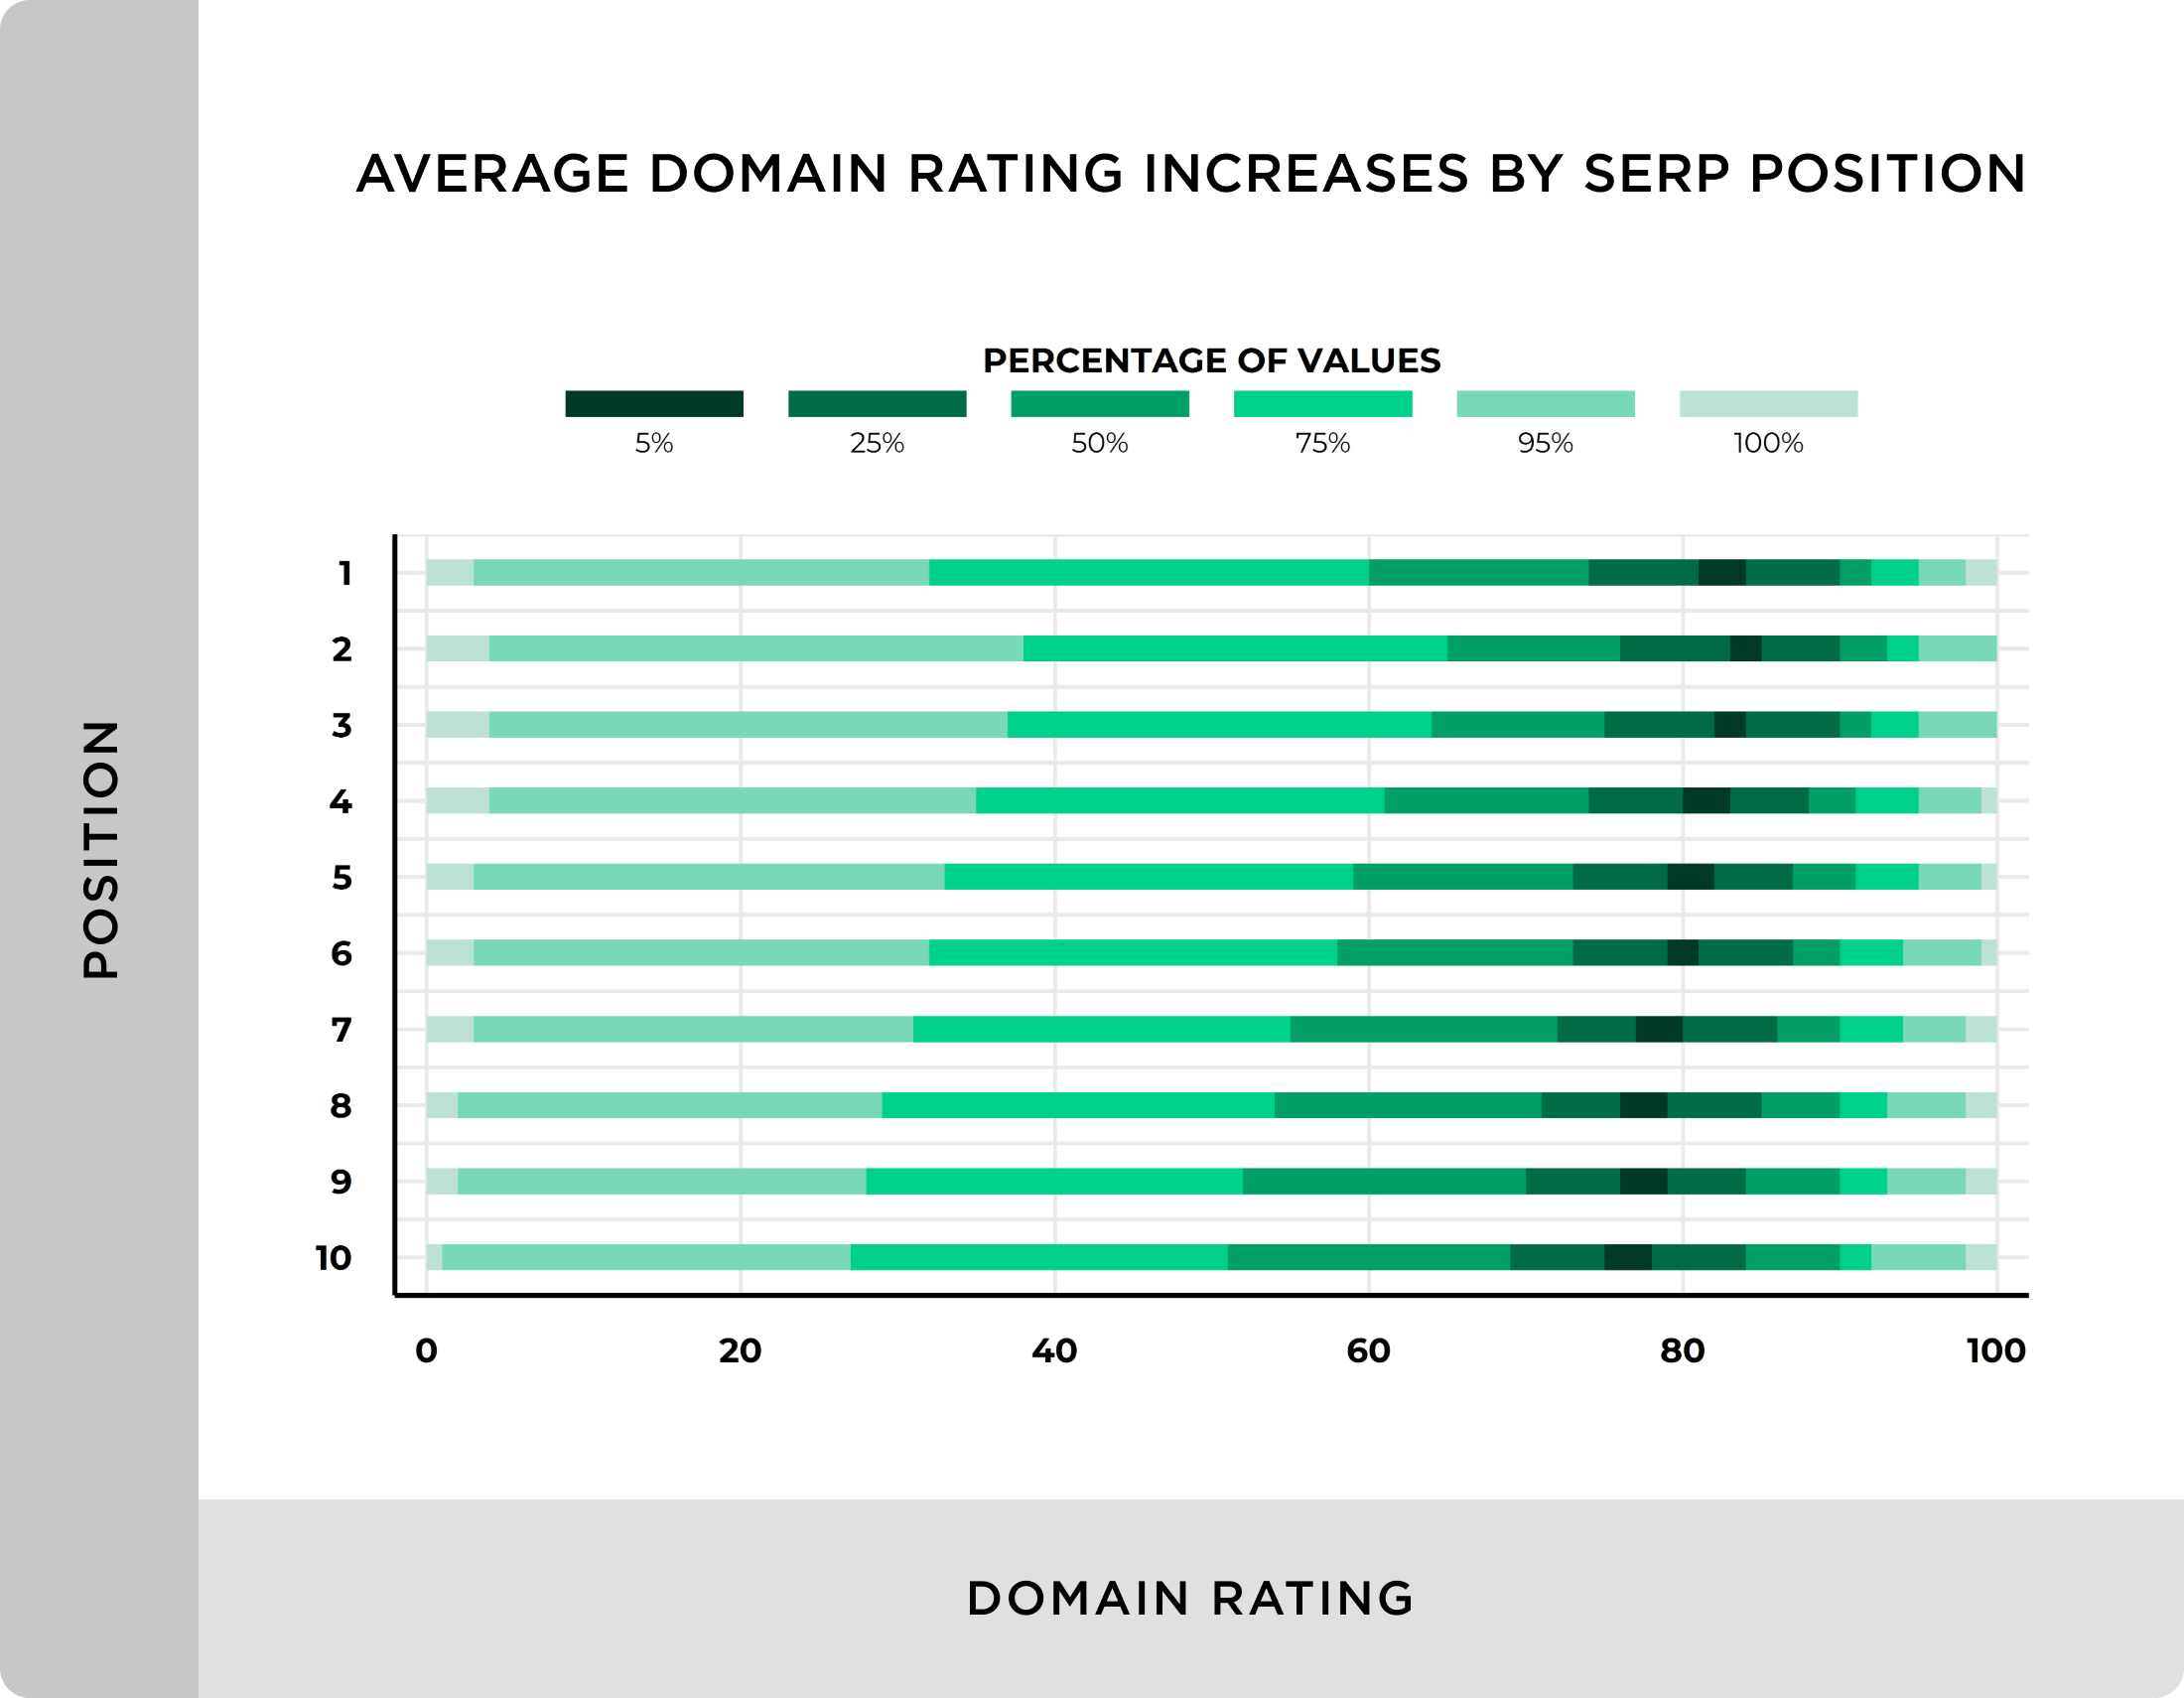 Average domain rating increases by SERP position